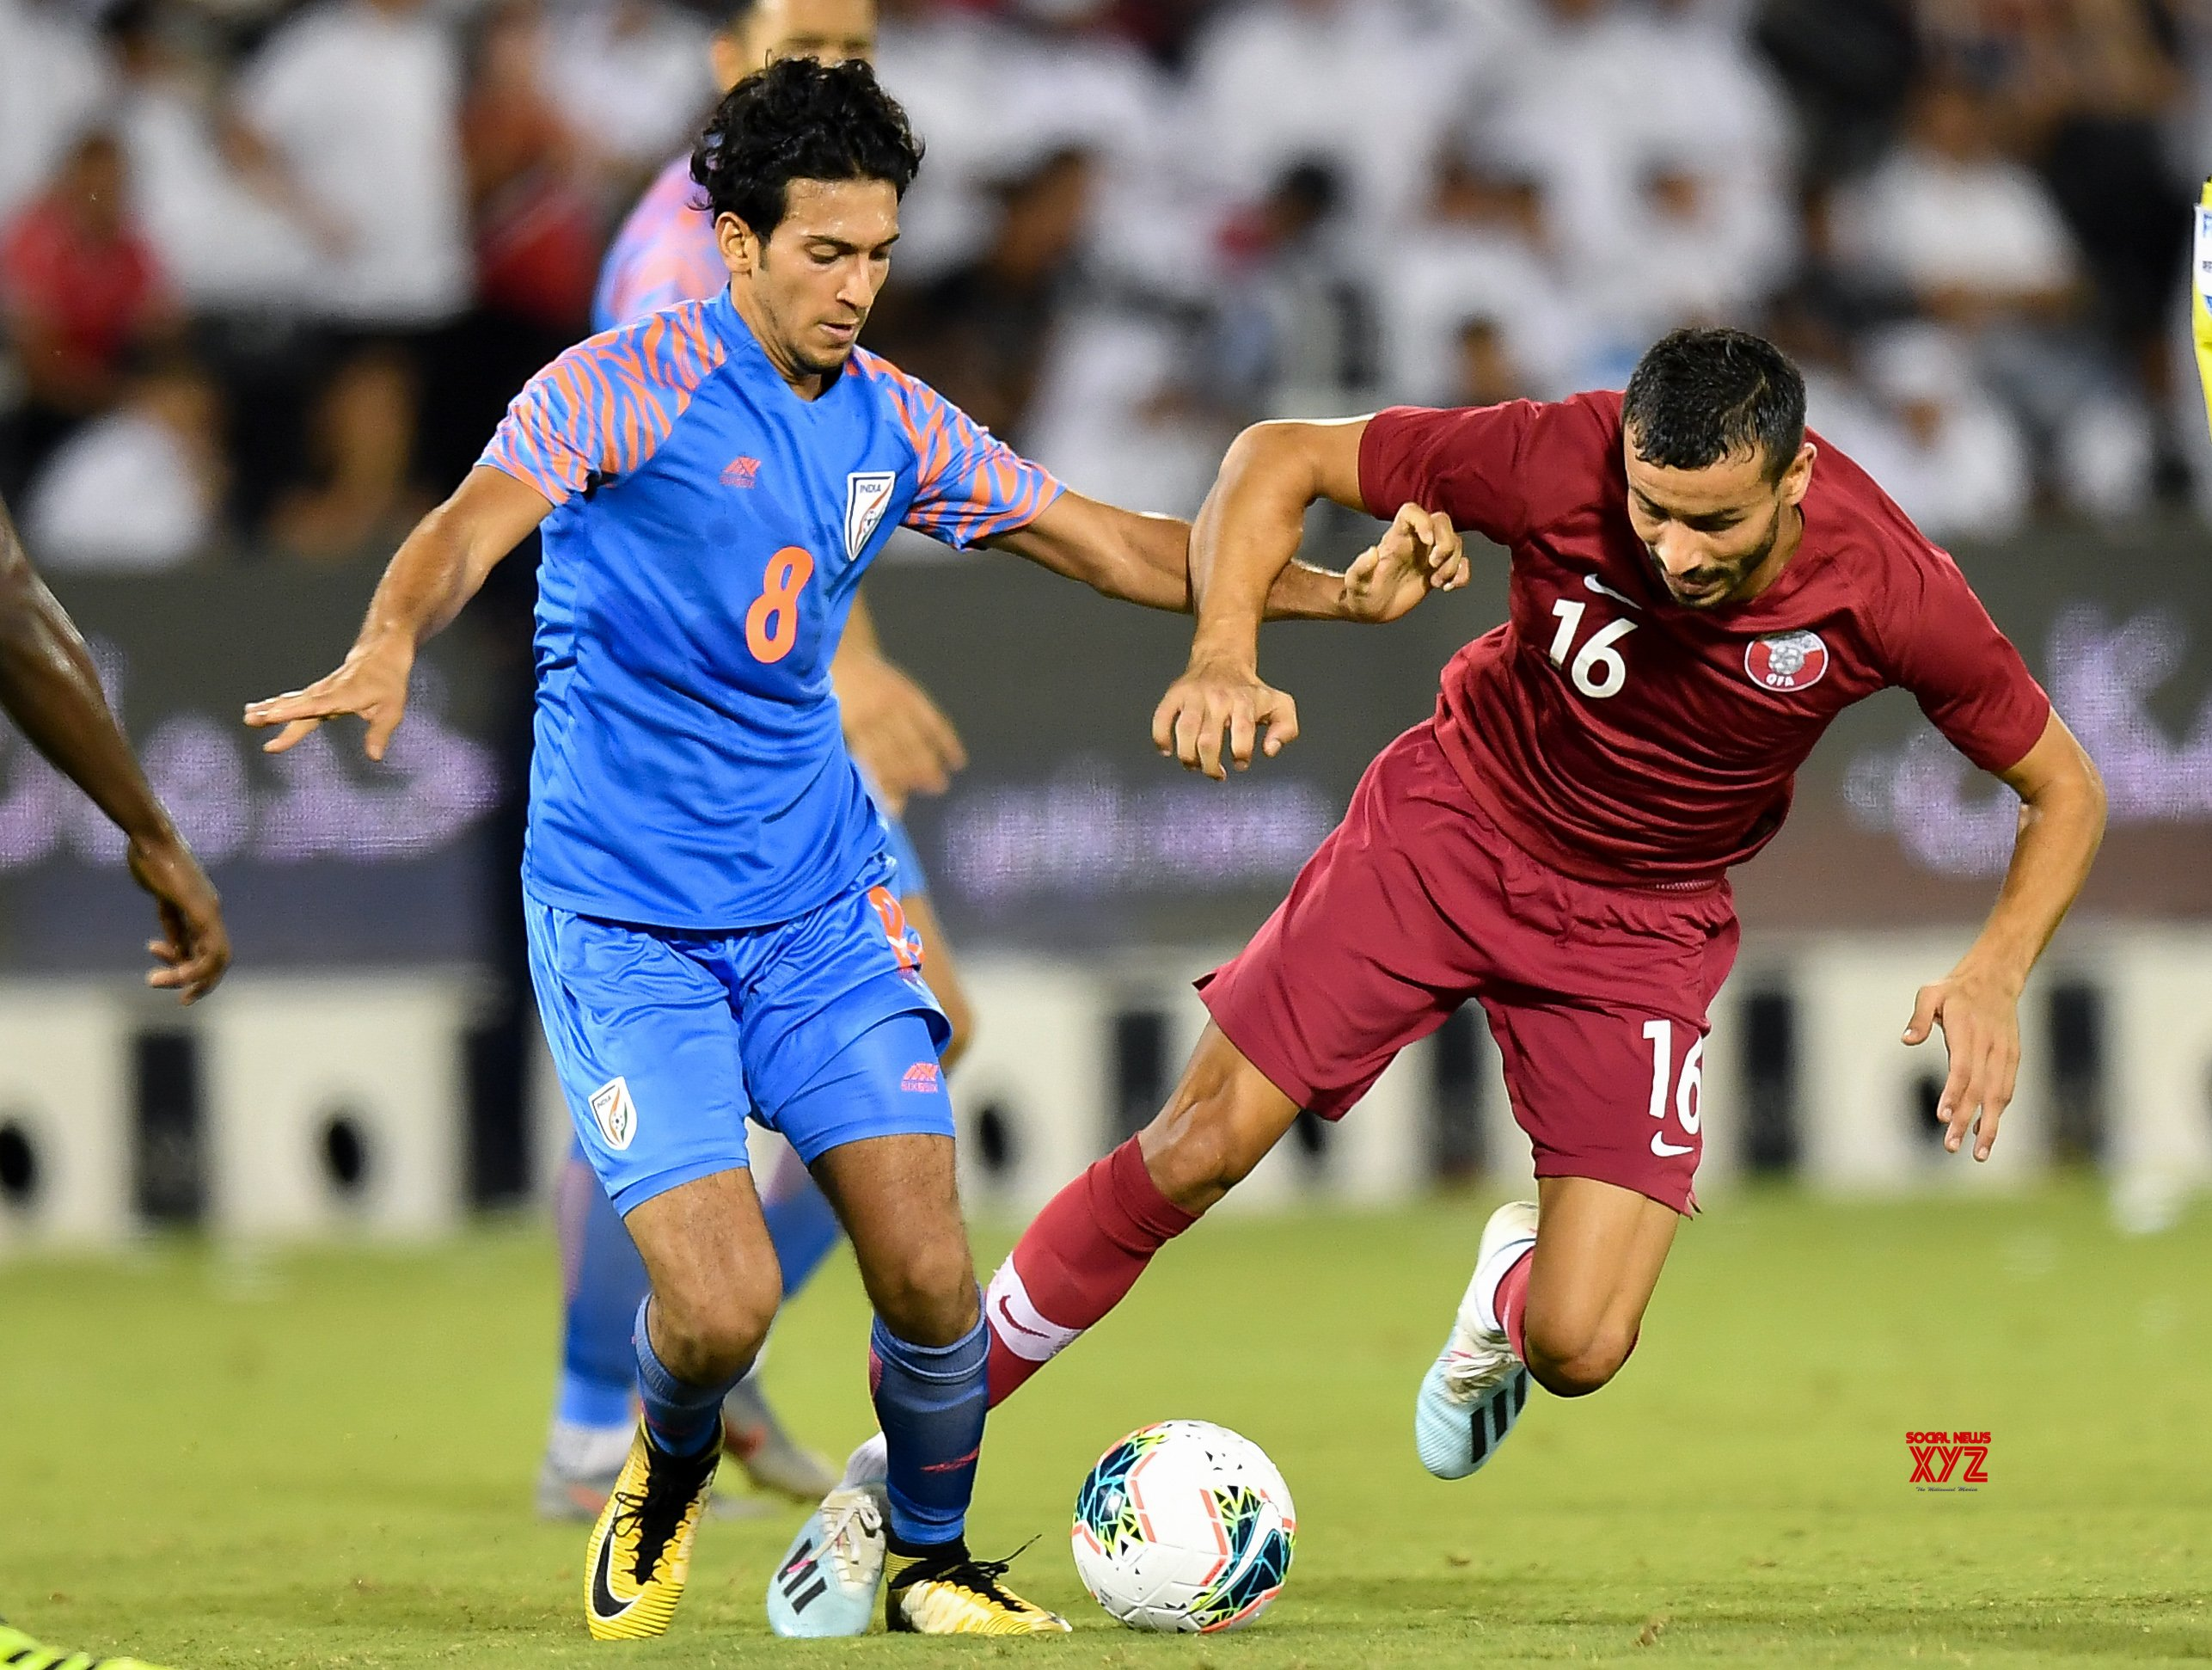 QATAR - DOHA - SOCCER - FIFA WORLD CUP QATAR 2022 AND AFC ASIAN CUP CHINA 2023 PRELIMINARY JOINT QUALIFICATION #Gallery